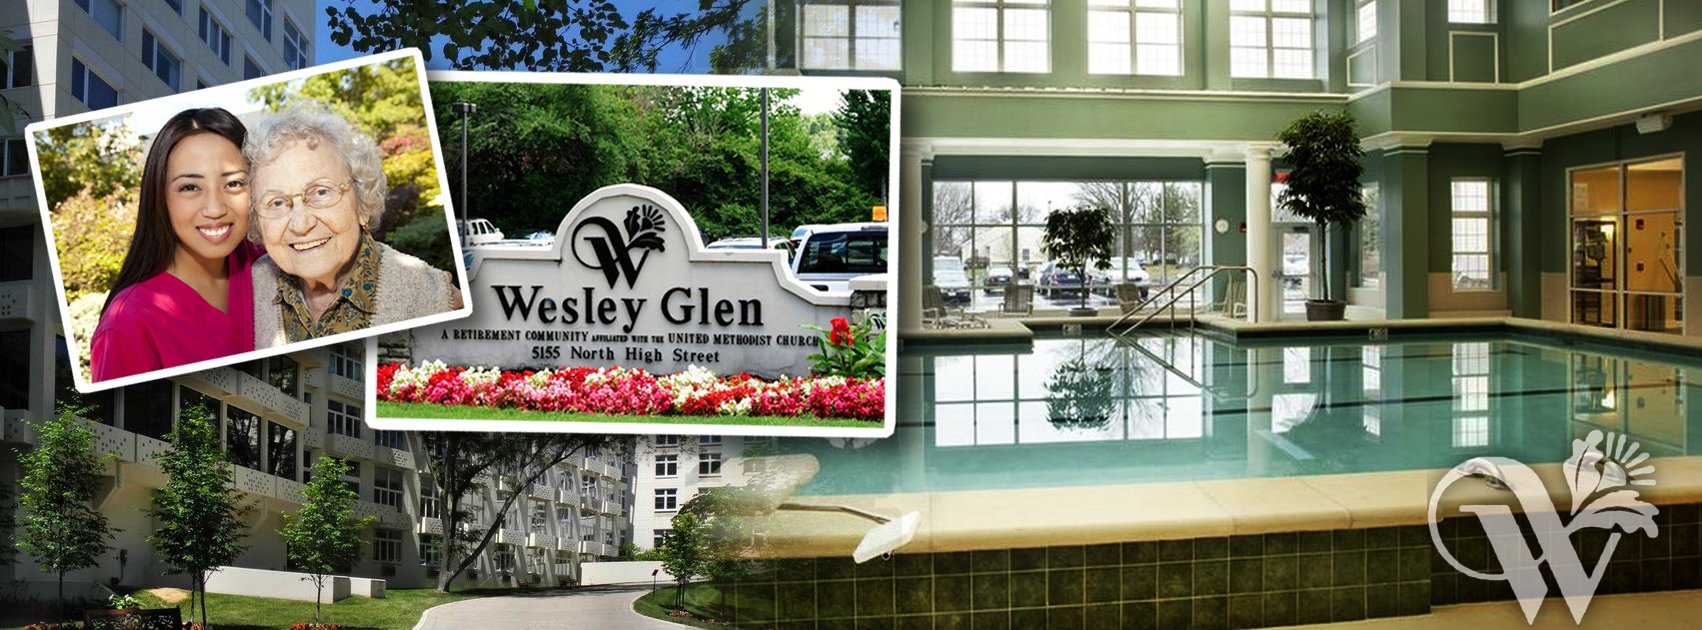 Wesley Glen Retirement Community reviews | Assisted Living Facilities at 5155 N High St - Columbus OH